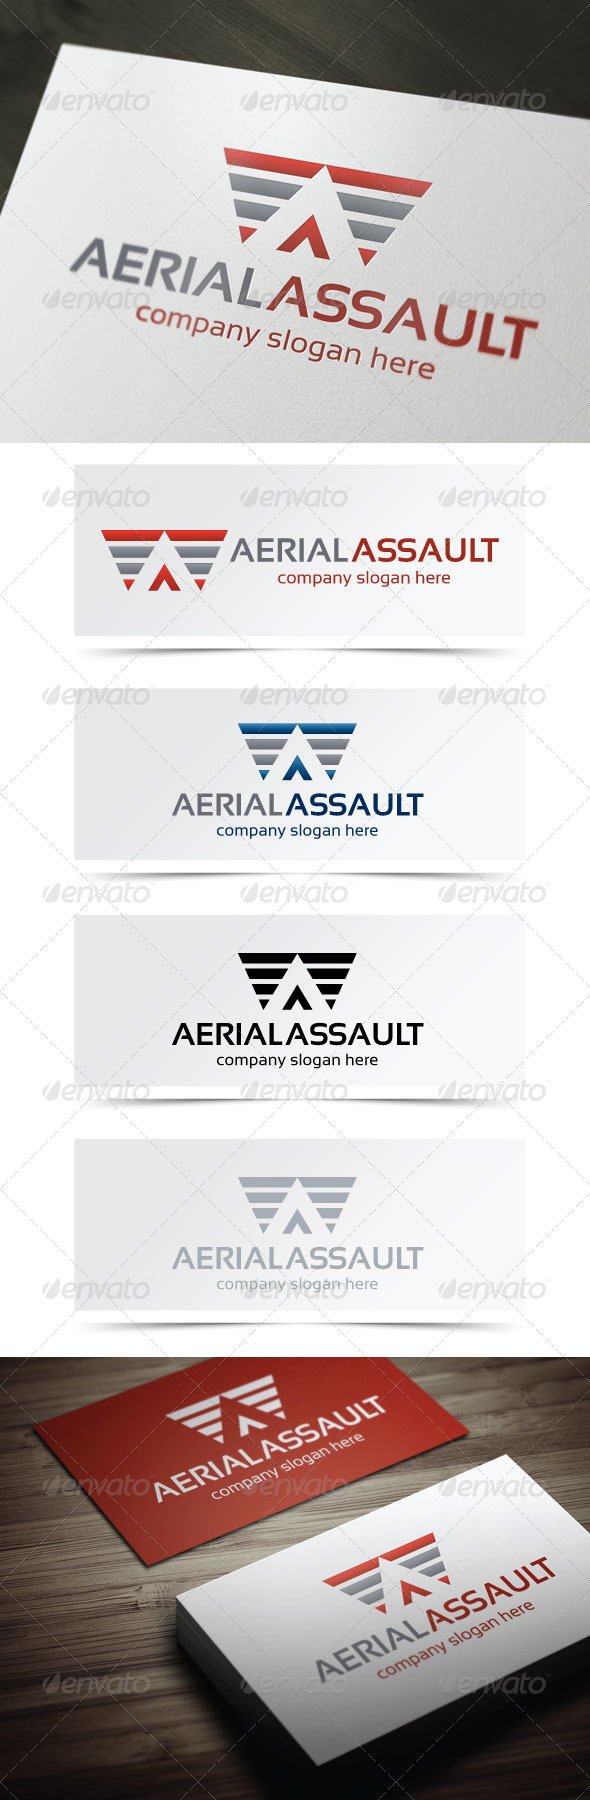 GraphicRiver Aerial Assault 5189116